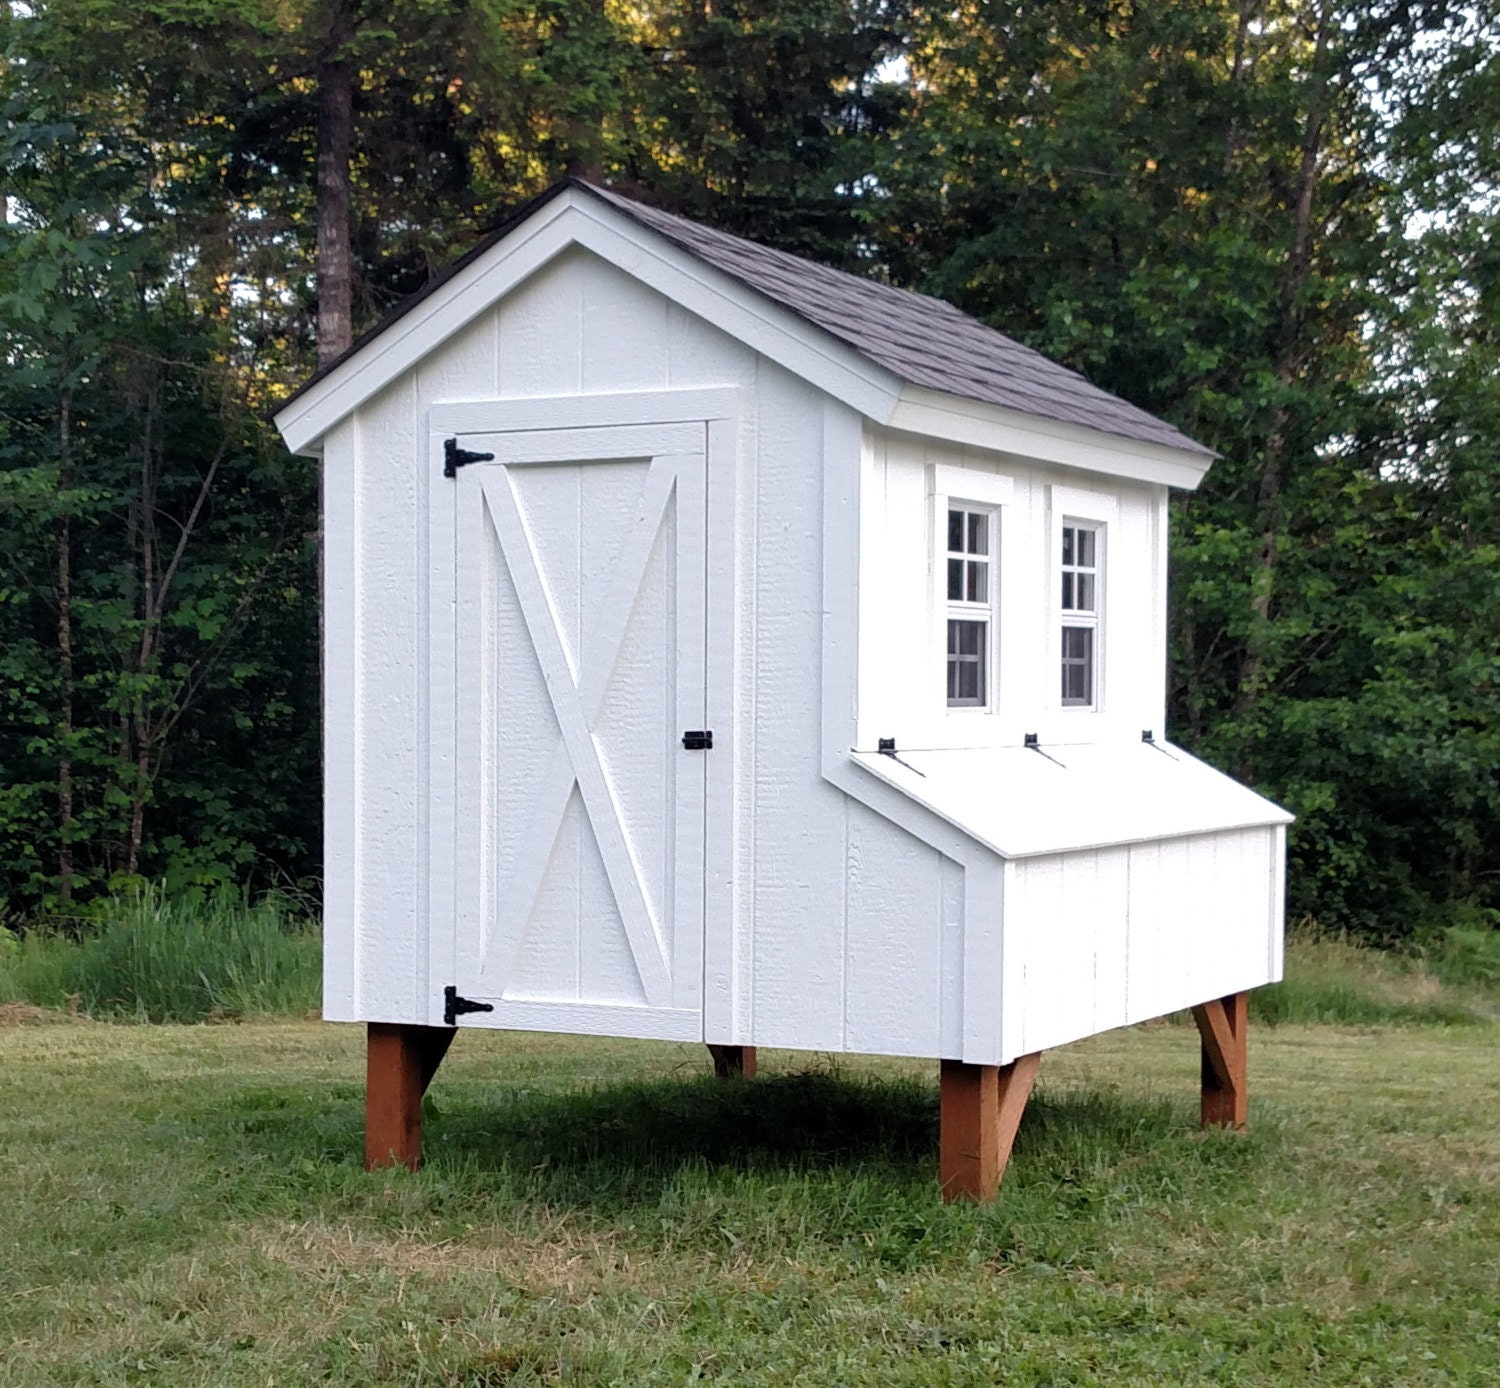 34 Free Chicken Coop Plans Ideas That You Can Build On: Build A Chicken Coop From Shed